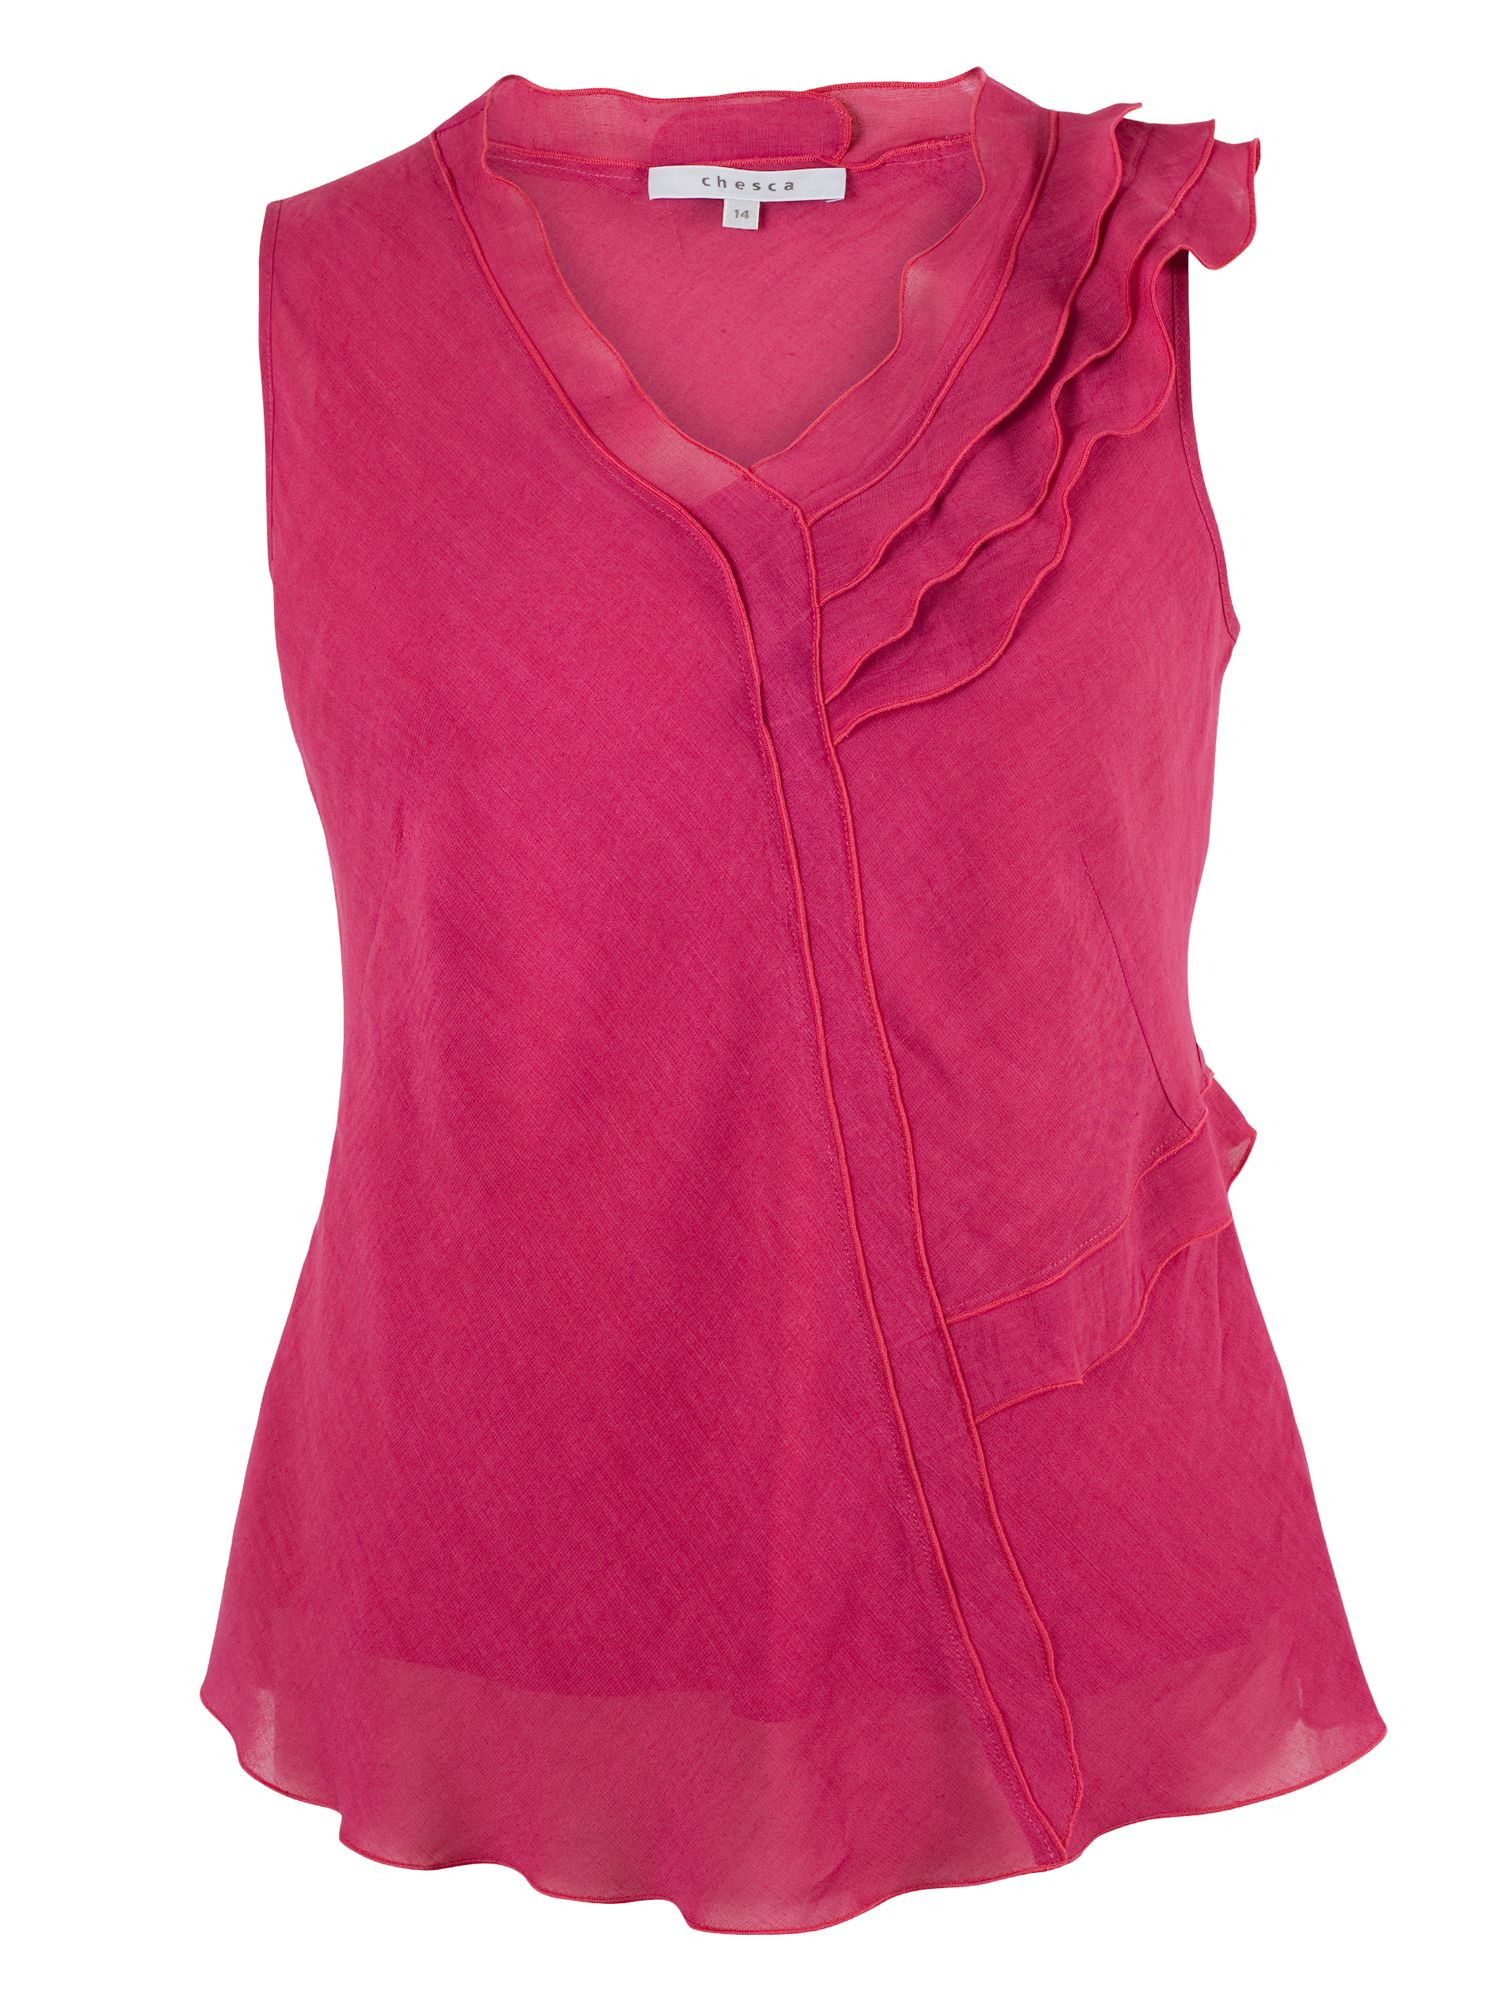 Chesca Frill Linen Top, Pink